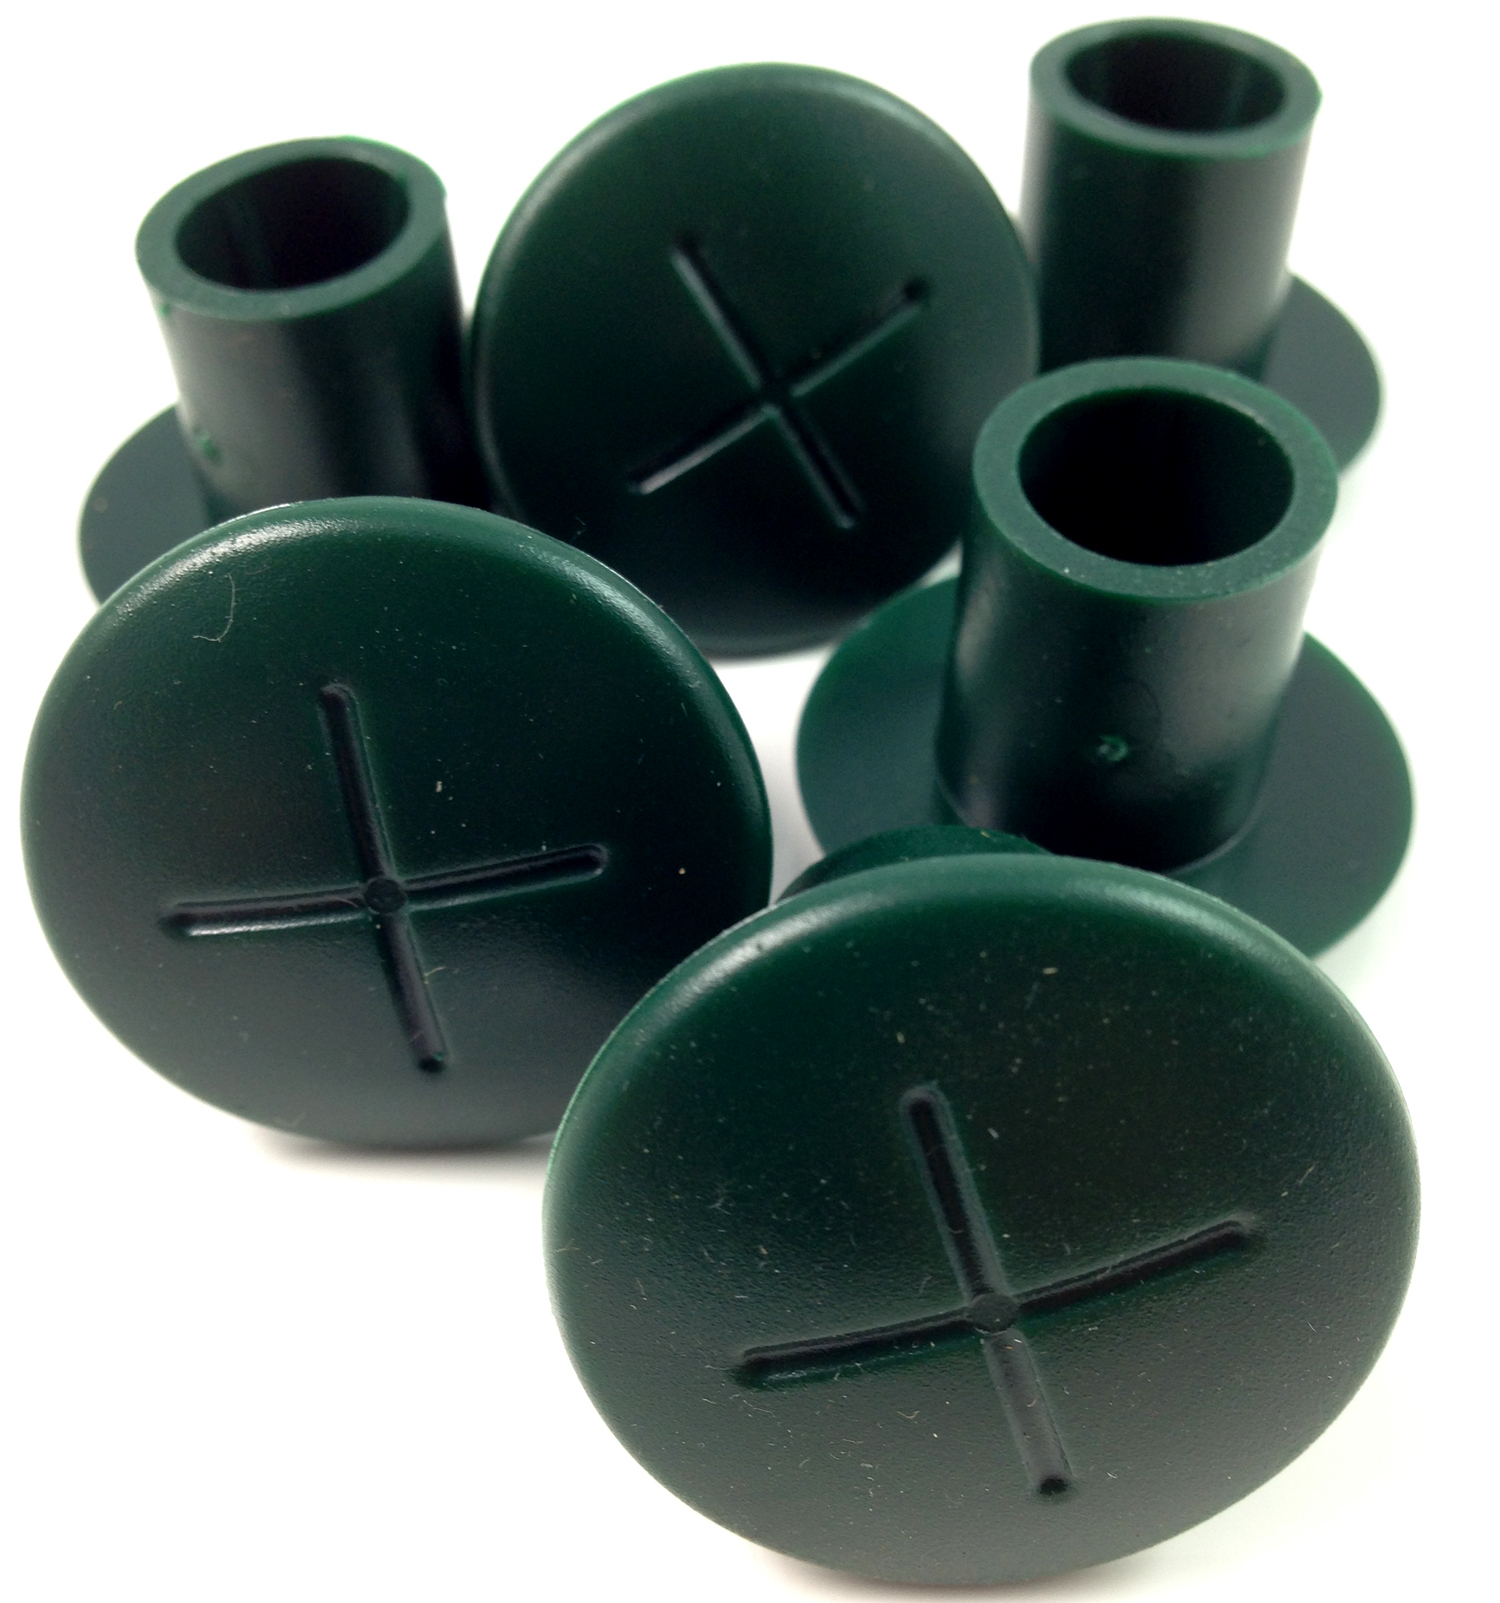 Garden cane protective green plastic caps fits mm to